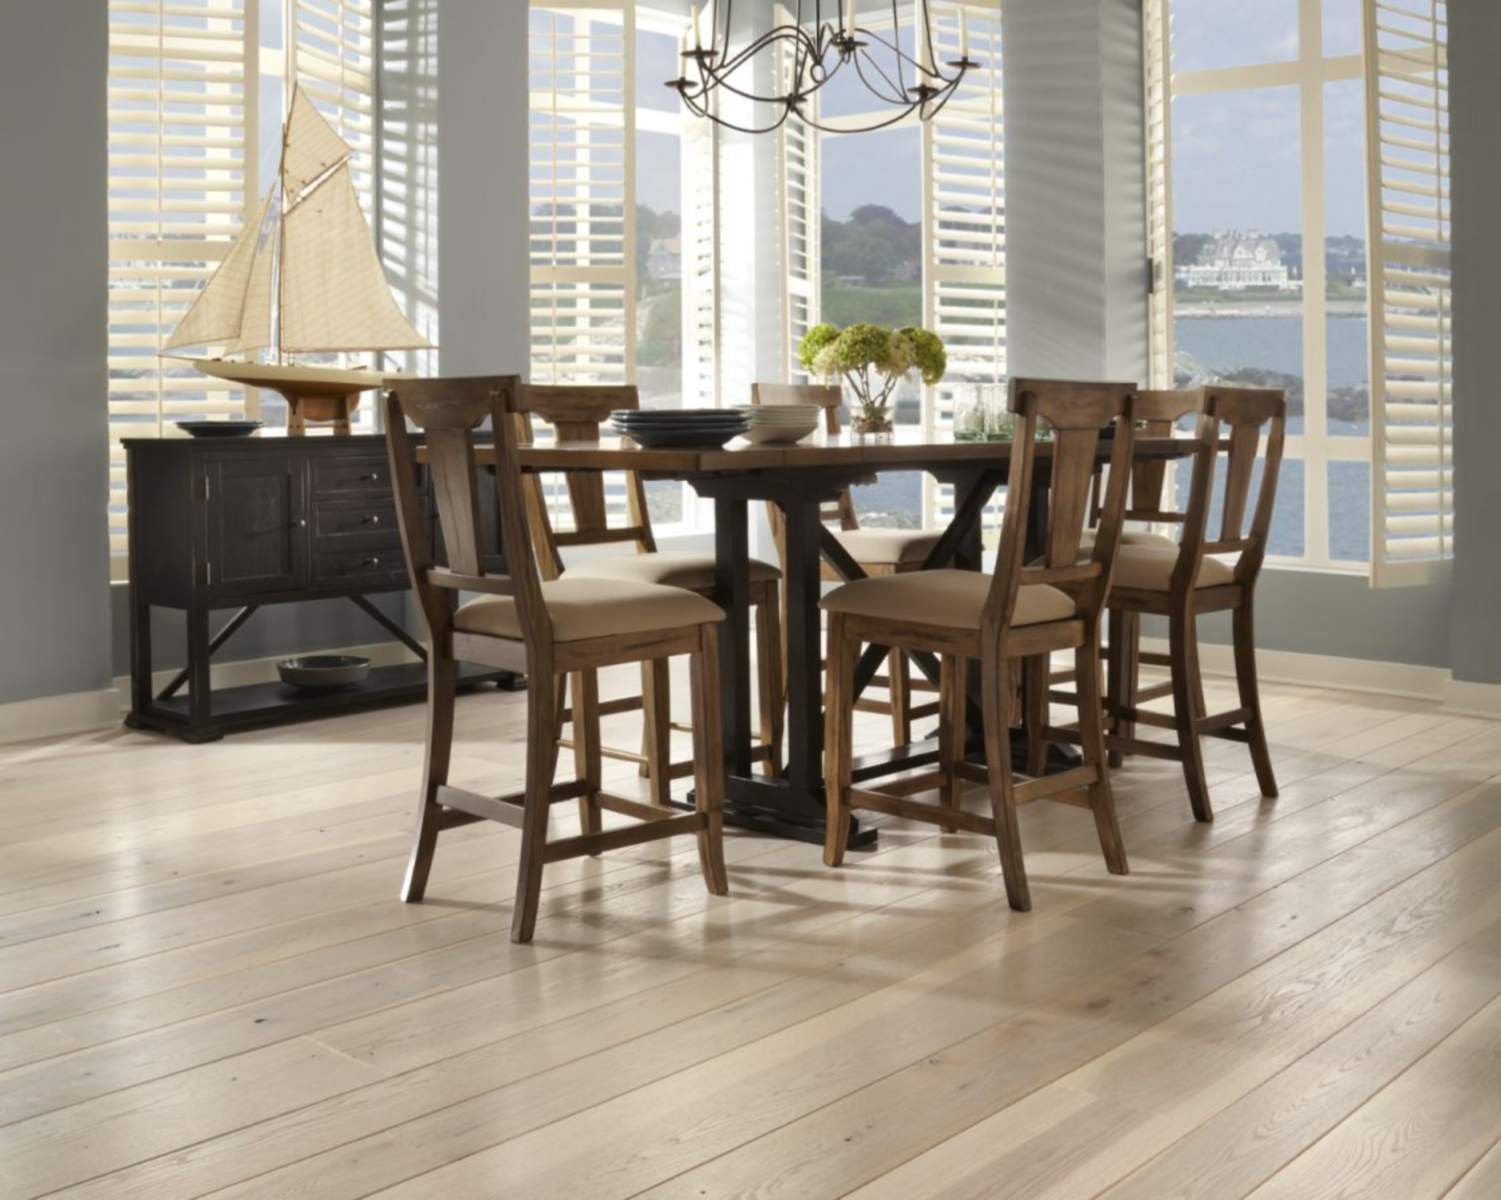 ash hardwood flooring pros and cons of top 5 brands for solid hardwood flooring pertaining to a dining room with carlisle hickorys wide plank flooring